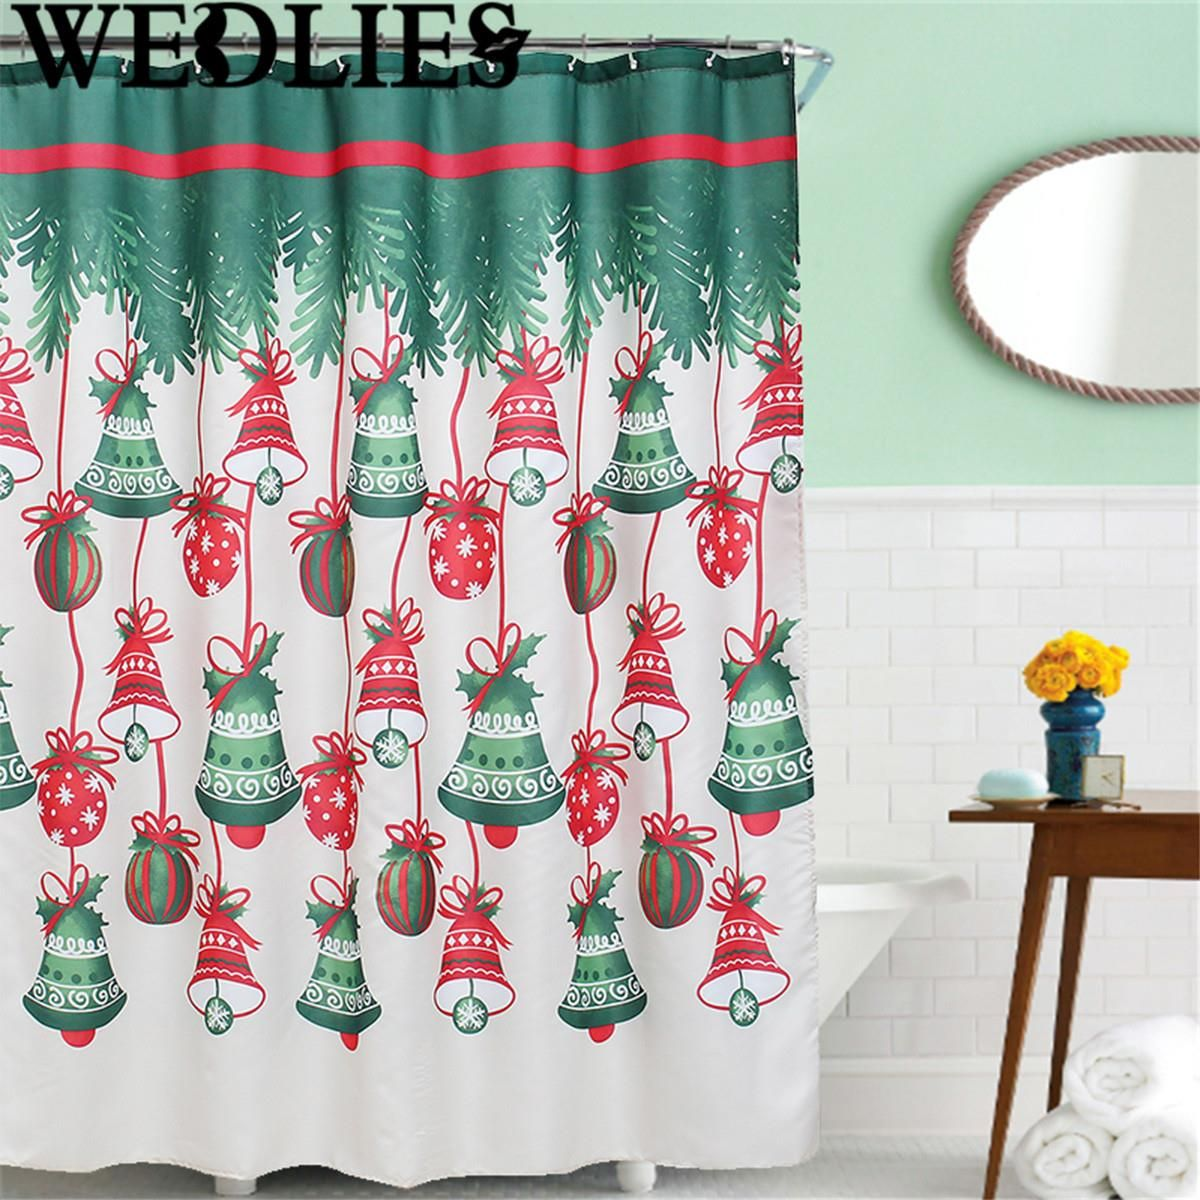 Polyester Christmas Bells Waterproof Shower Curtain Bath Shower Screen  Cover Household Bathroom Decorative Crafts Accessories